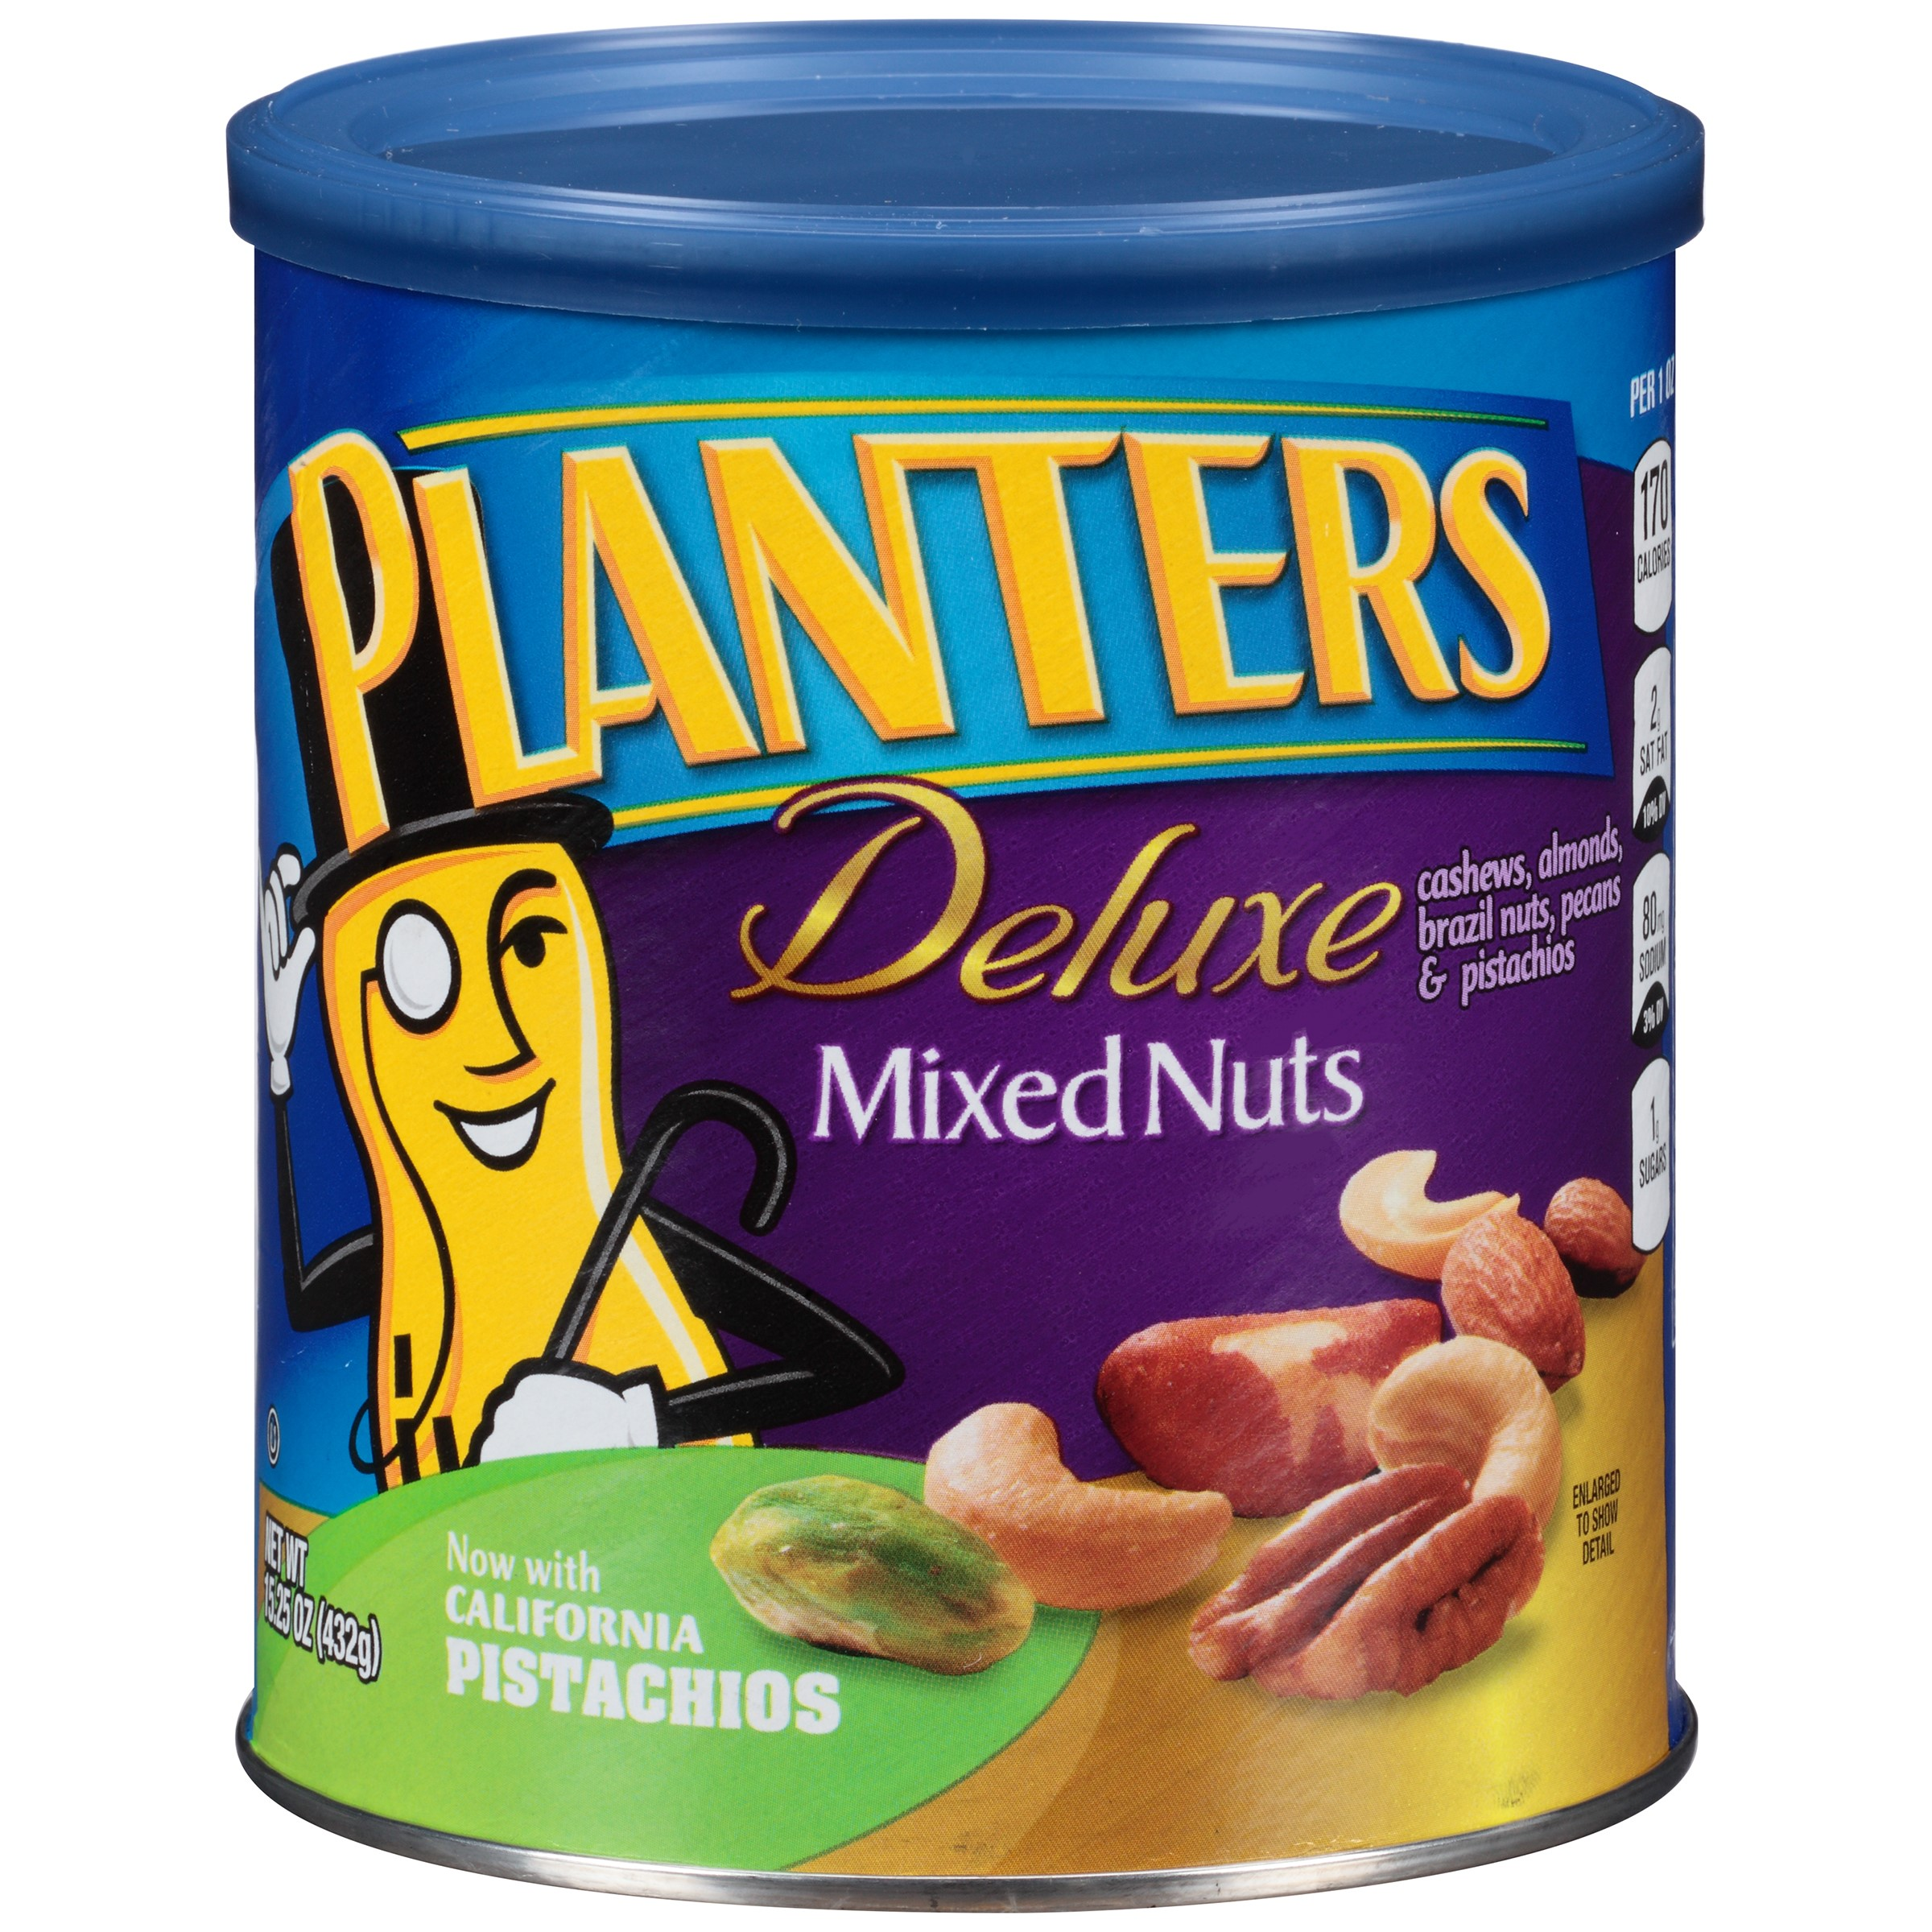 Planters Deluxe Mixed Nuts, 15.25 oz by Kraft